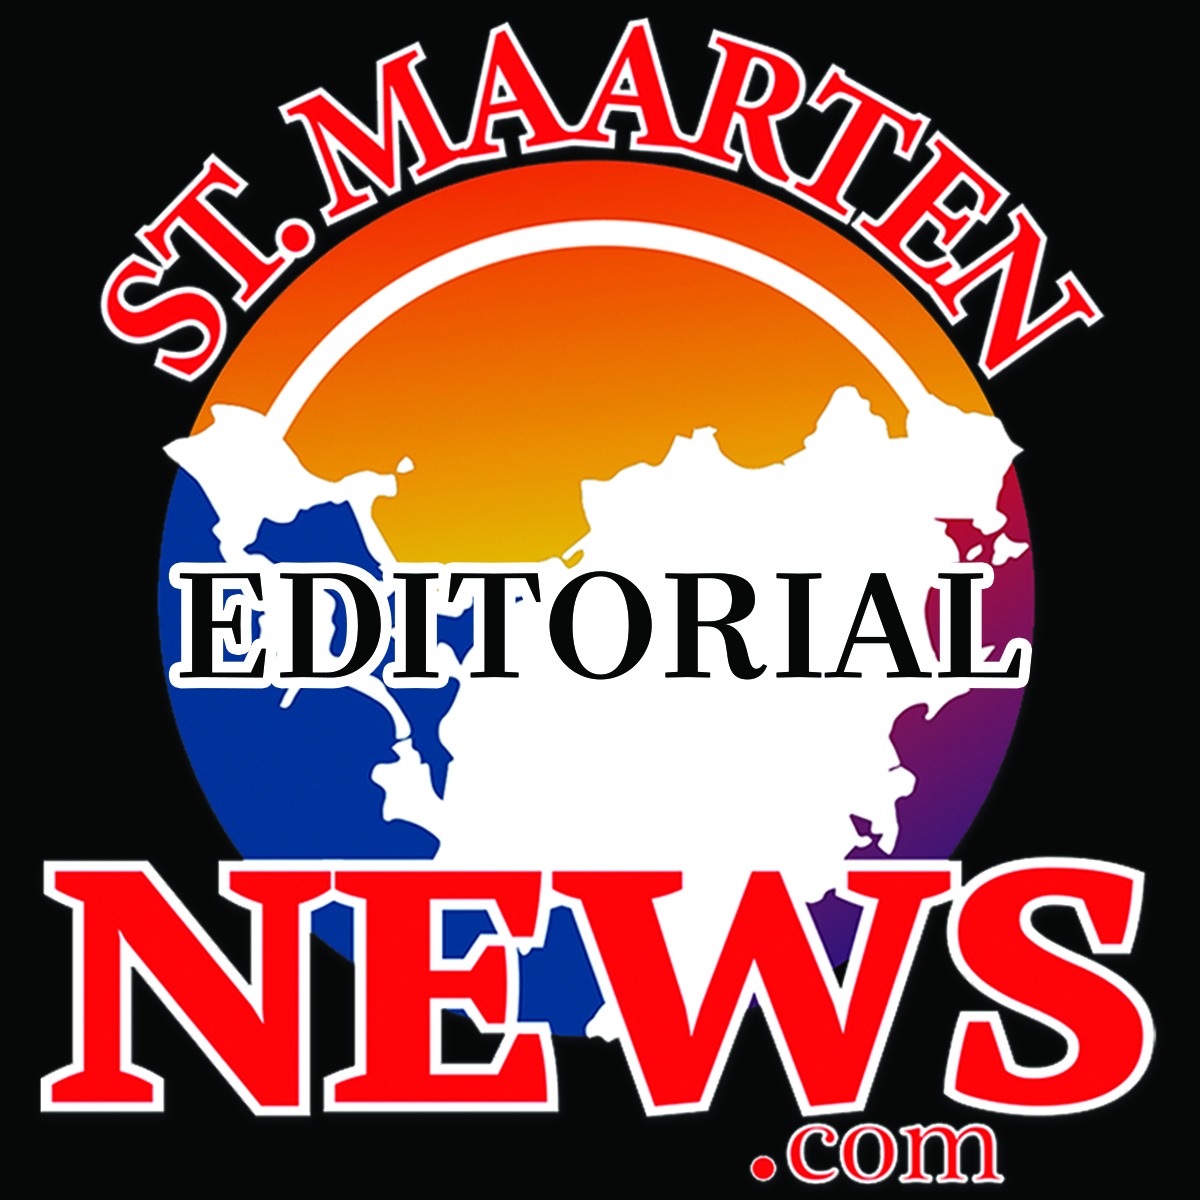 Editorial - St Maarten News